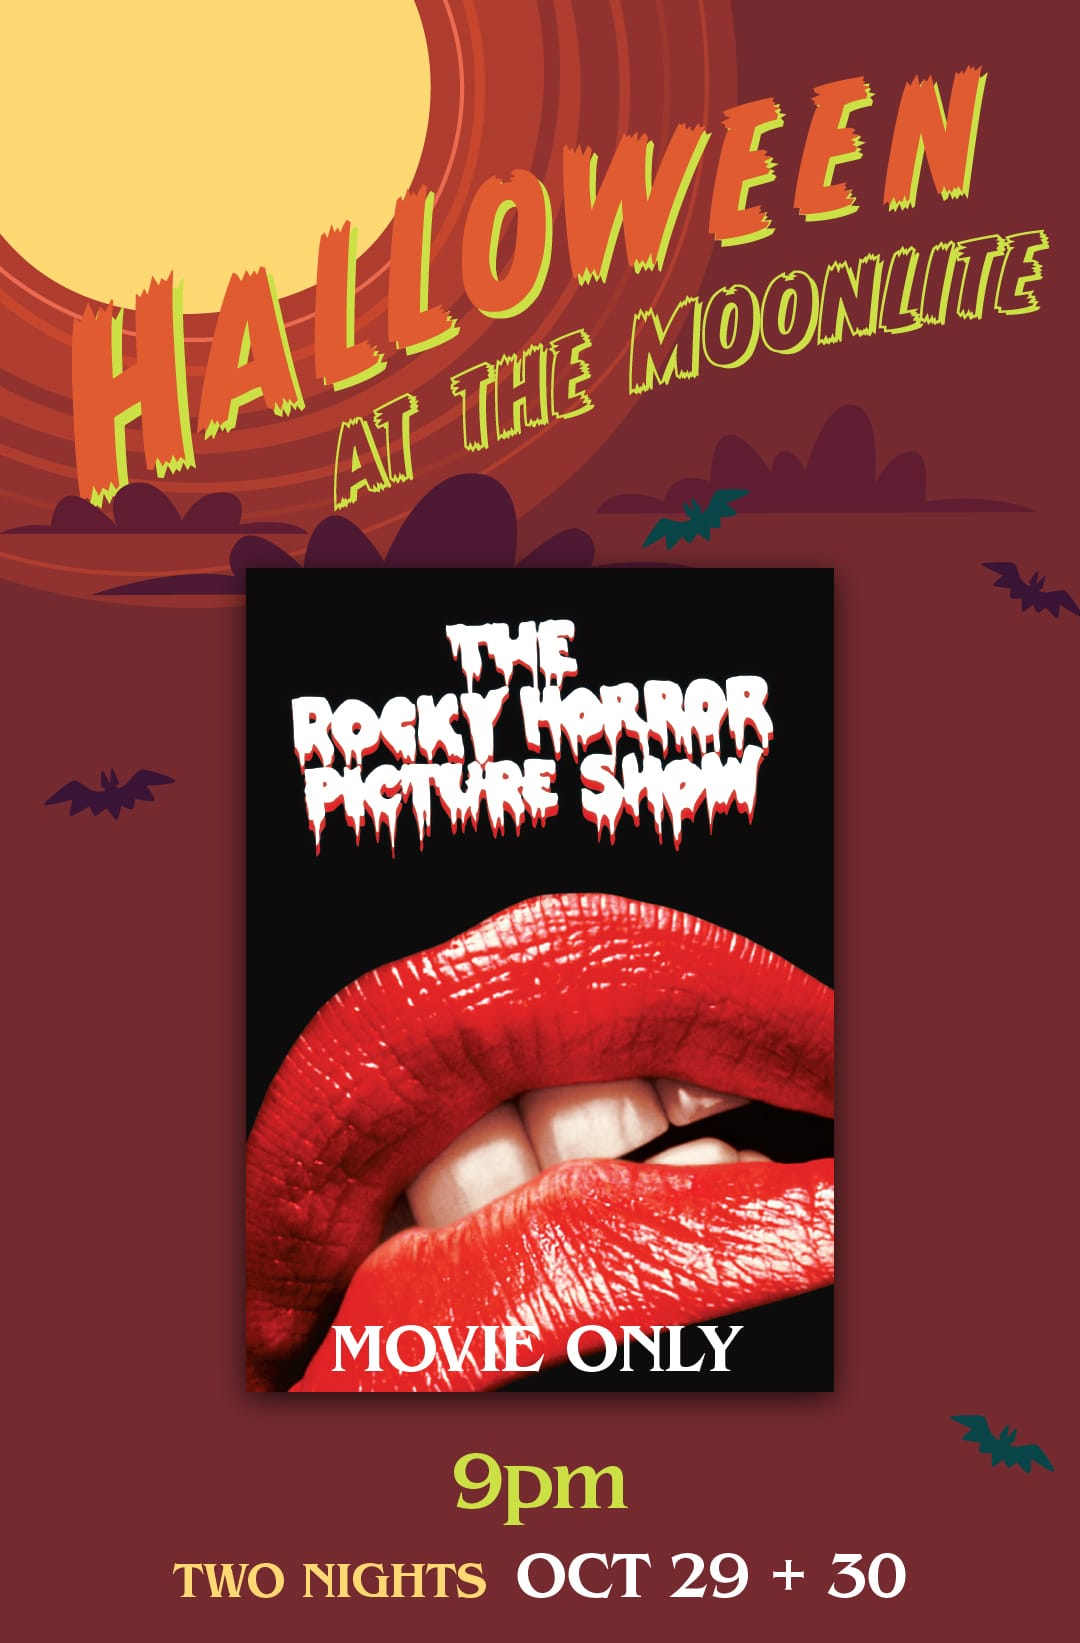 The Rocky Horror Picture Show Halloween at the Moonlite